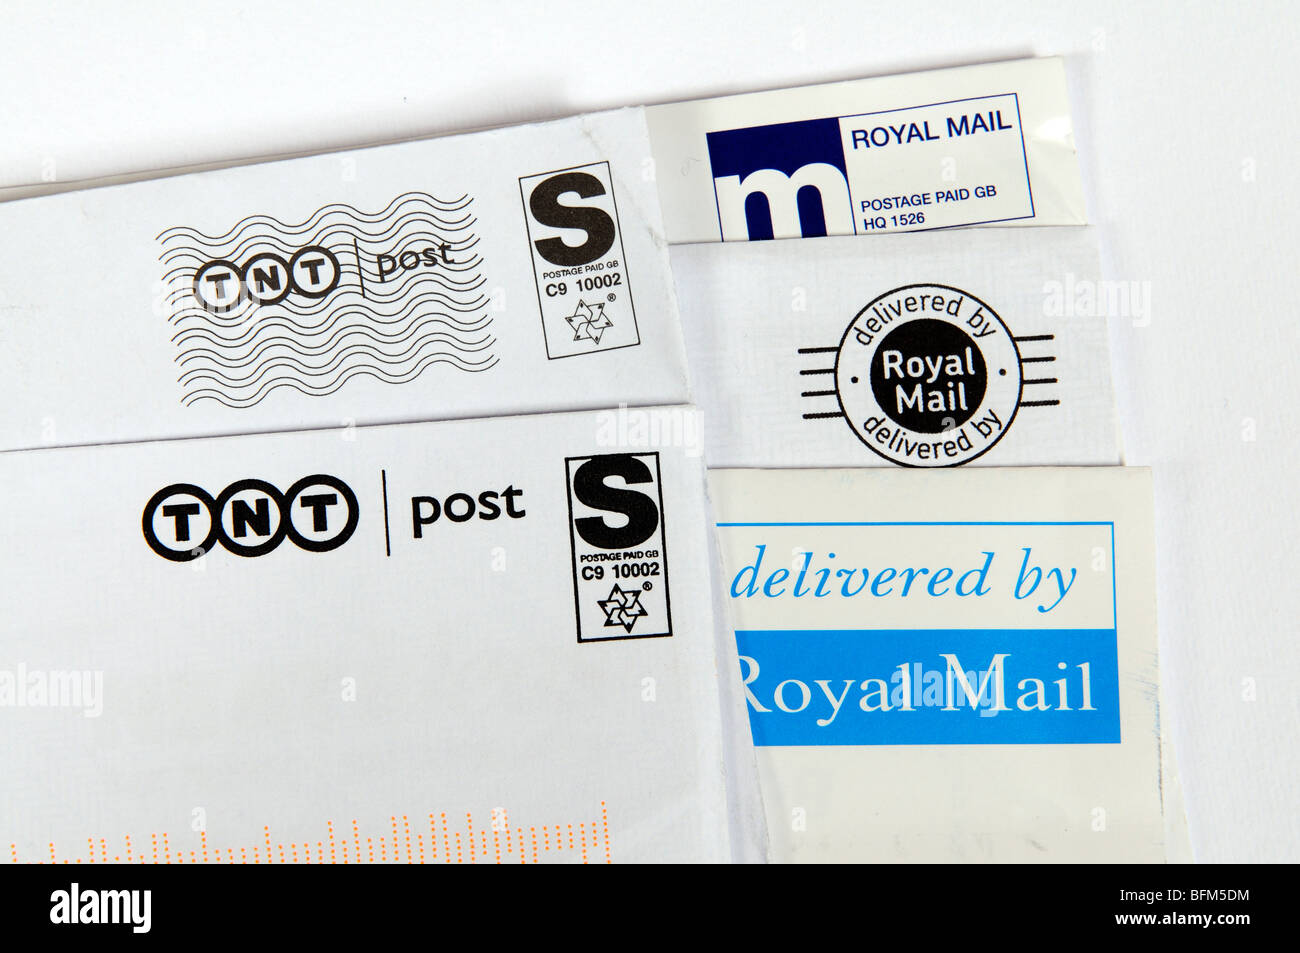 tnt post royal mail postage labels stock photo 26873552 alamy